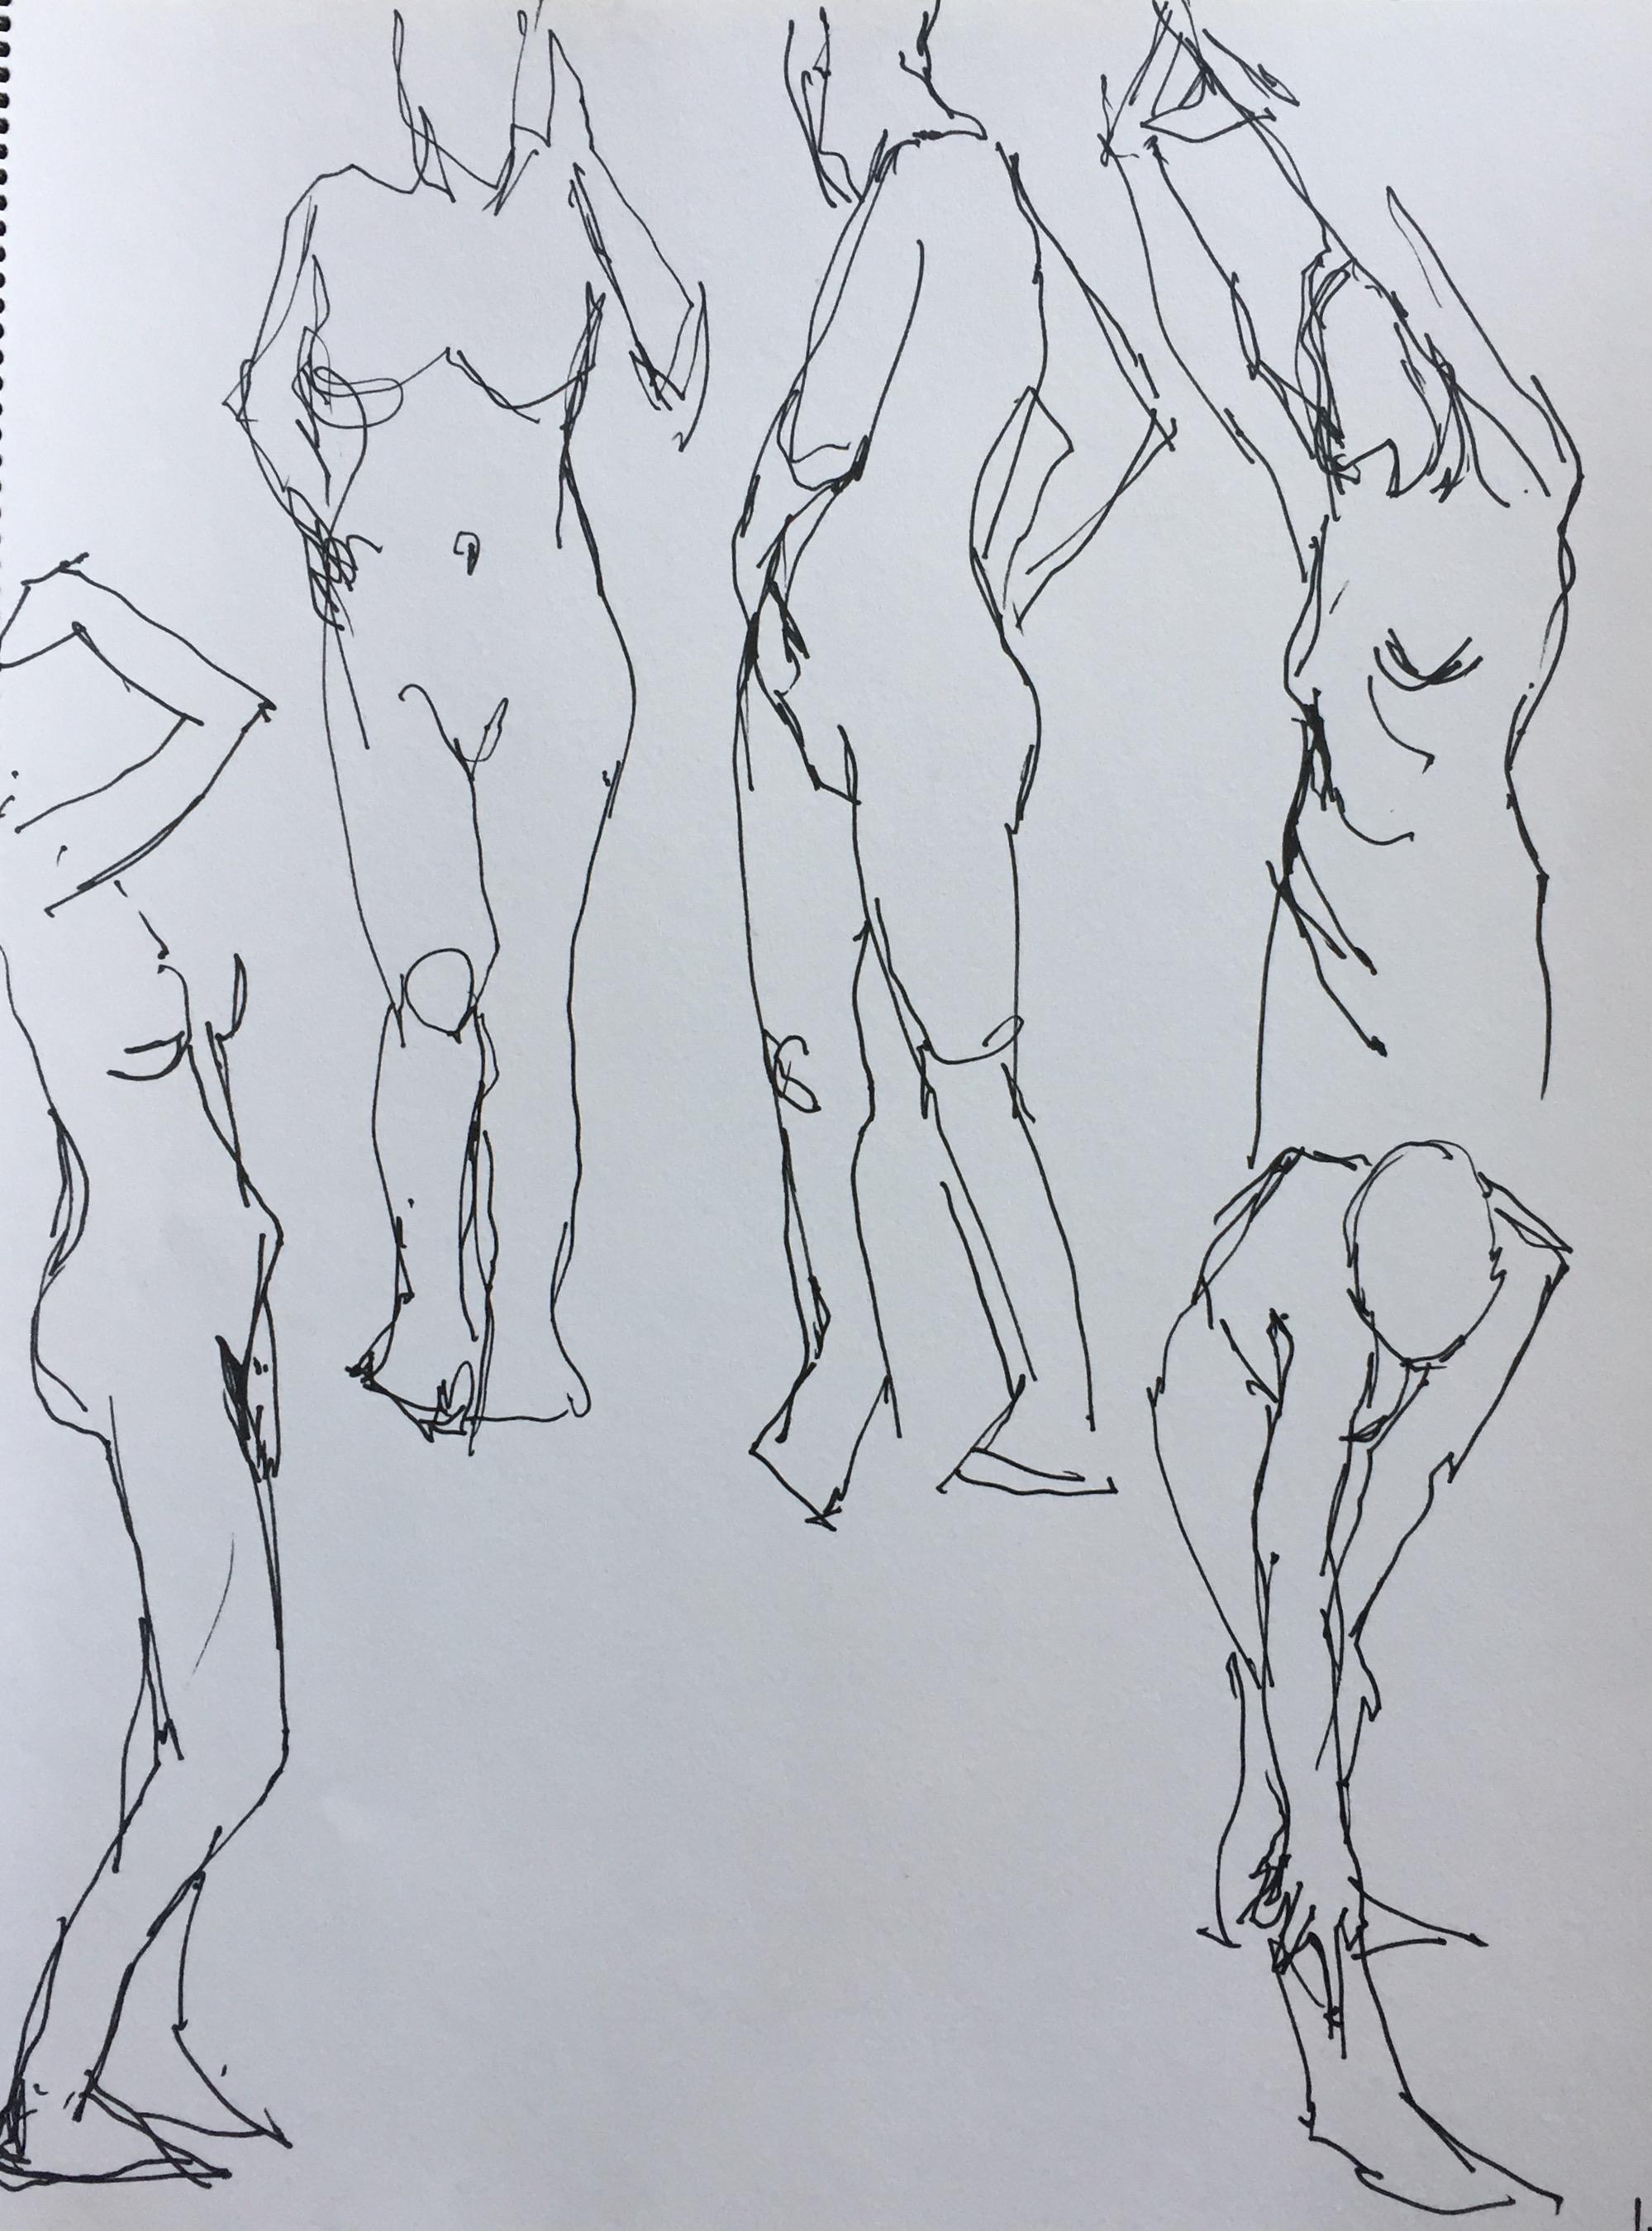 life drawing - One-minute poses